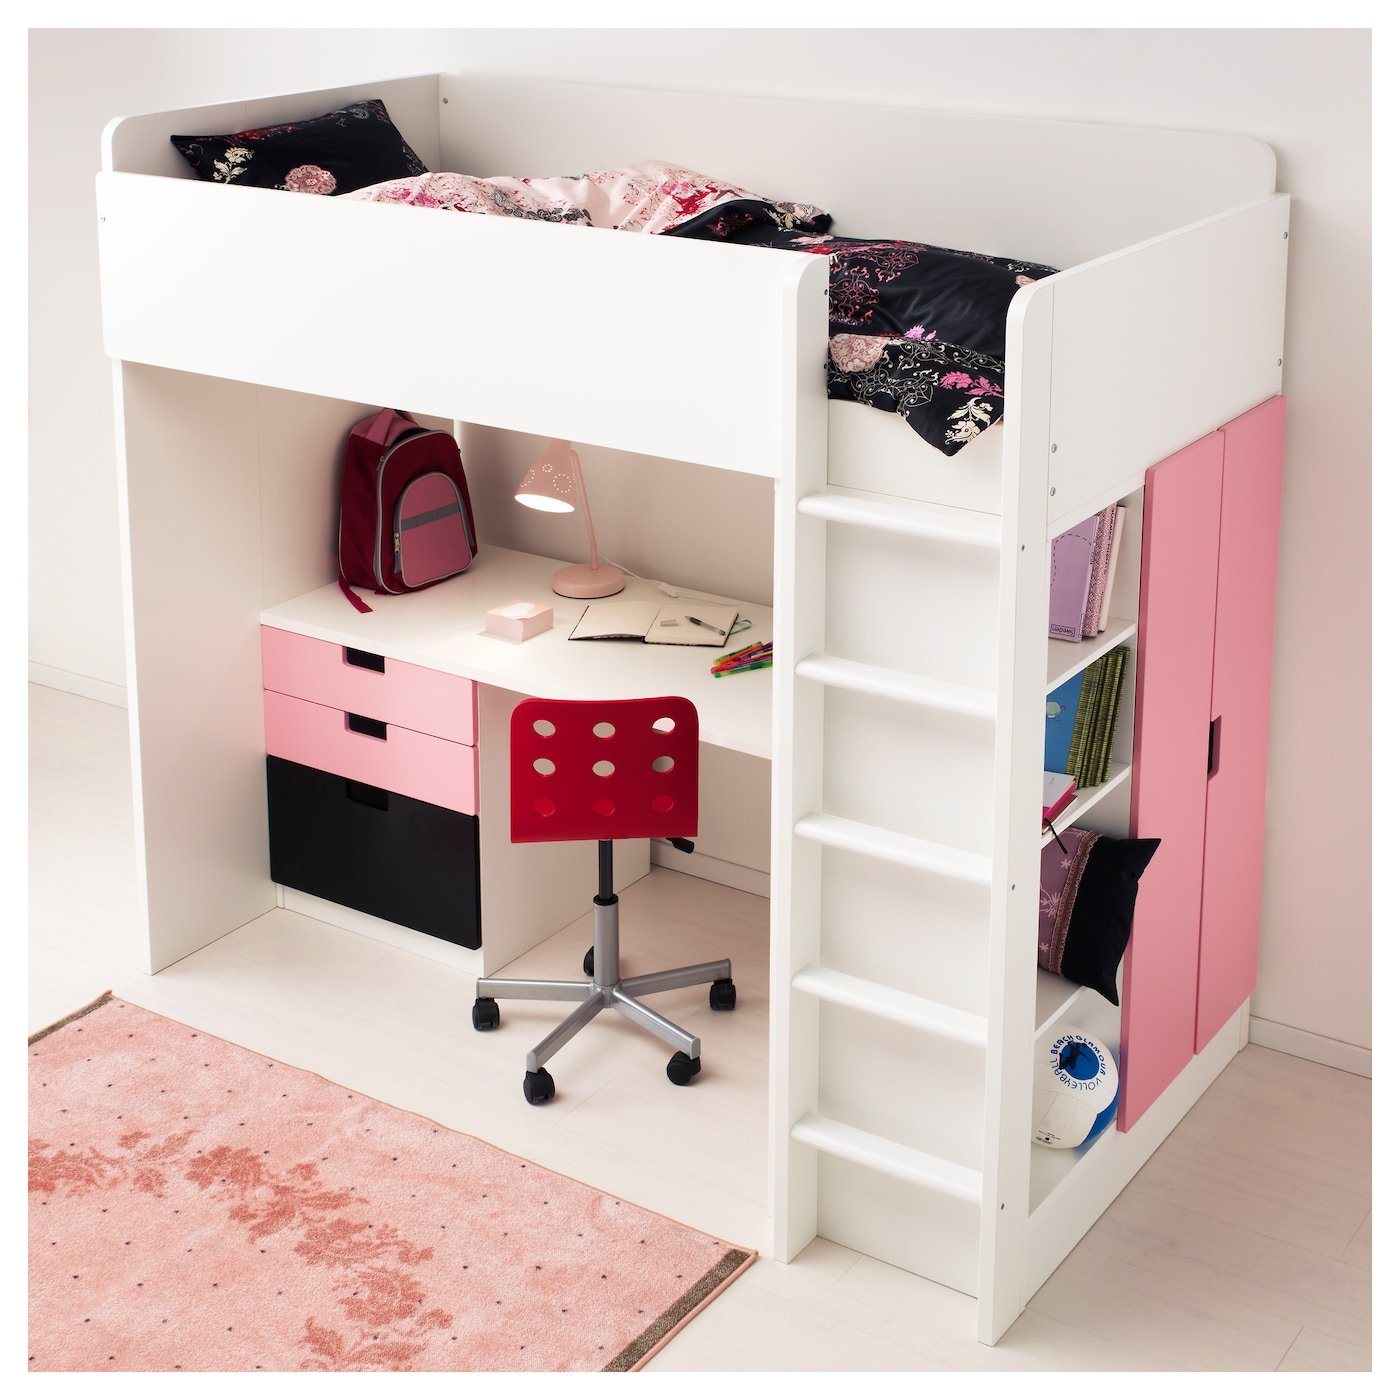 stuva loft bed combo w 1 drawer 2 doors white pink 207x99x193 cm ikea. Black Bedroom Furniture Sets. Home Design Ideas